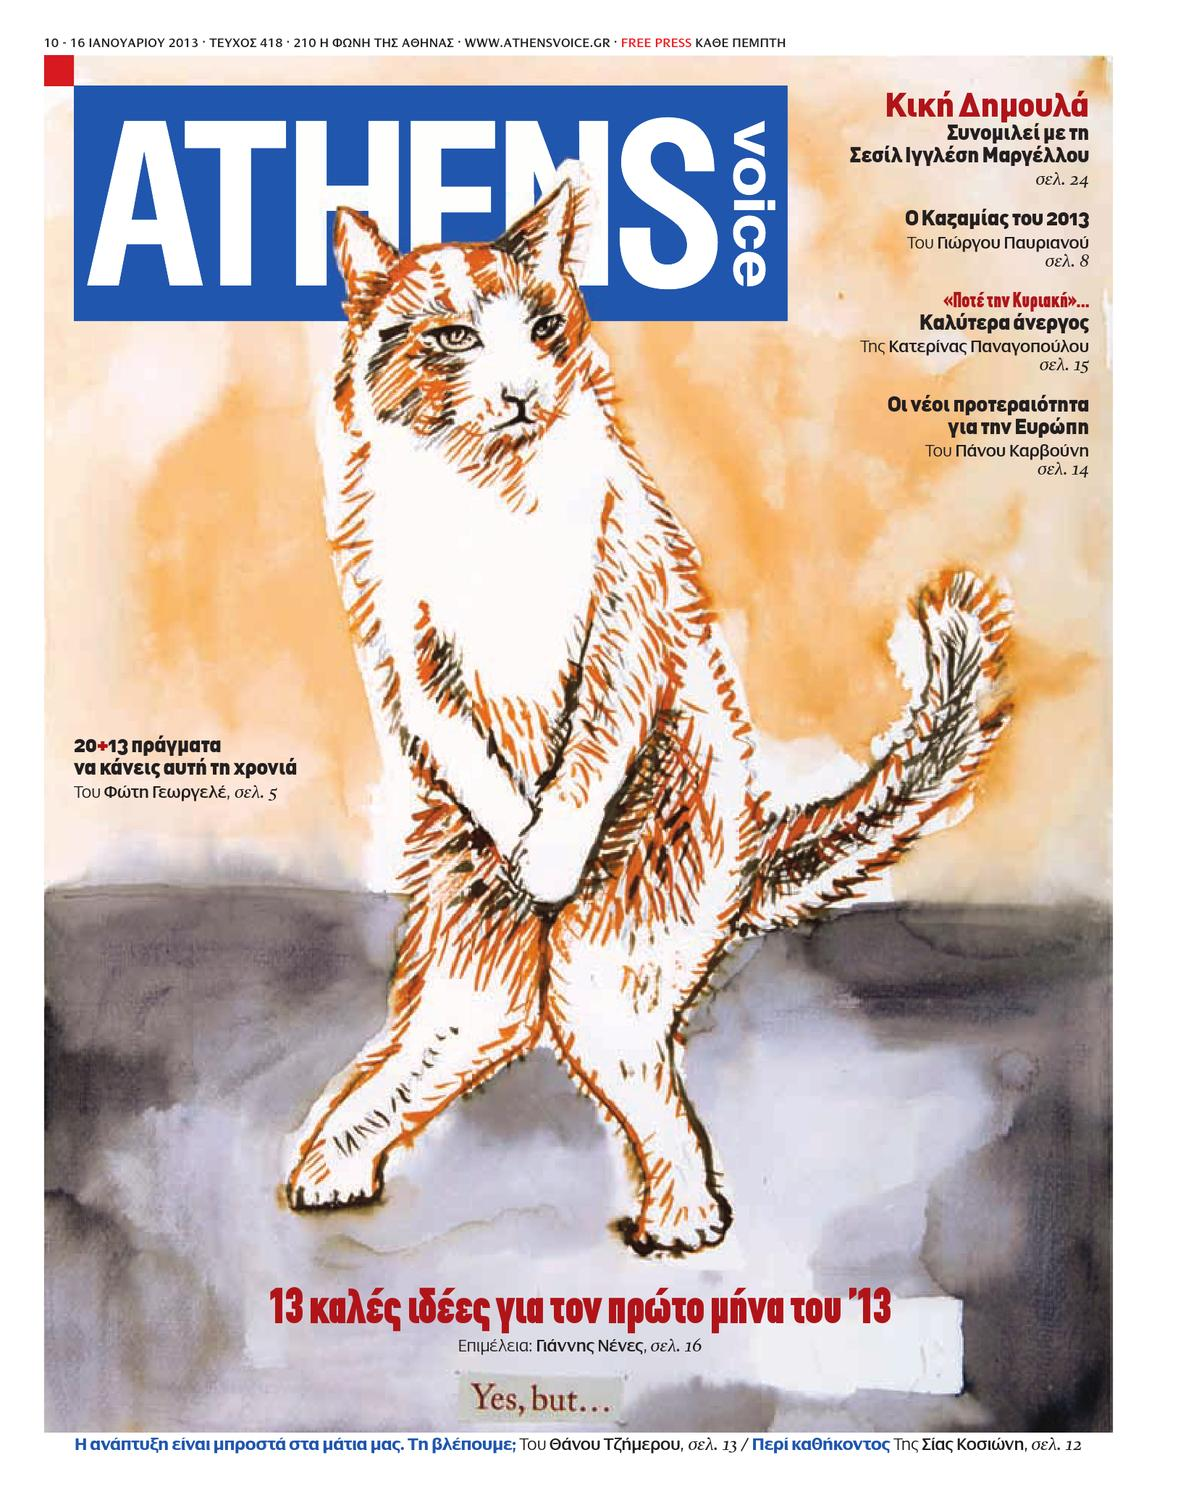 Athens Voice 418 by Athens Voice - issuu b703ebbdc3f